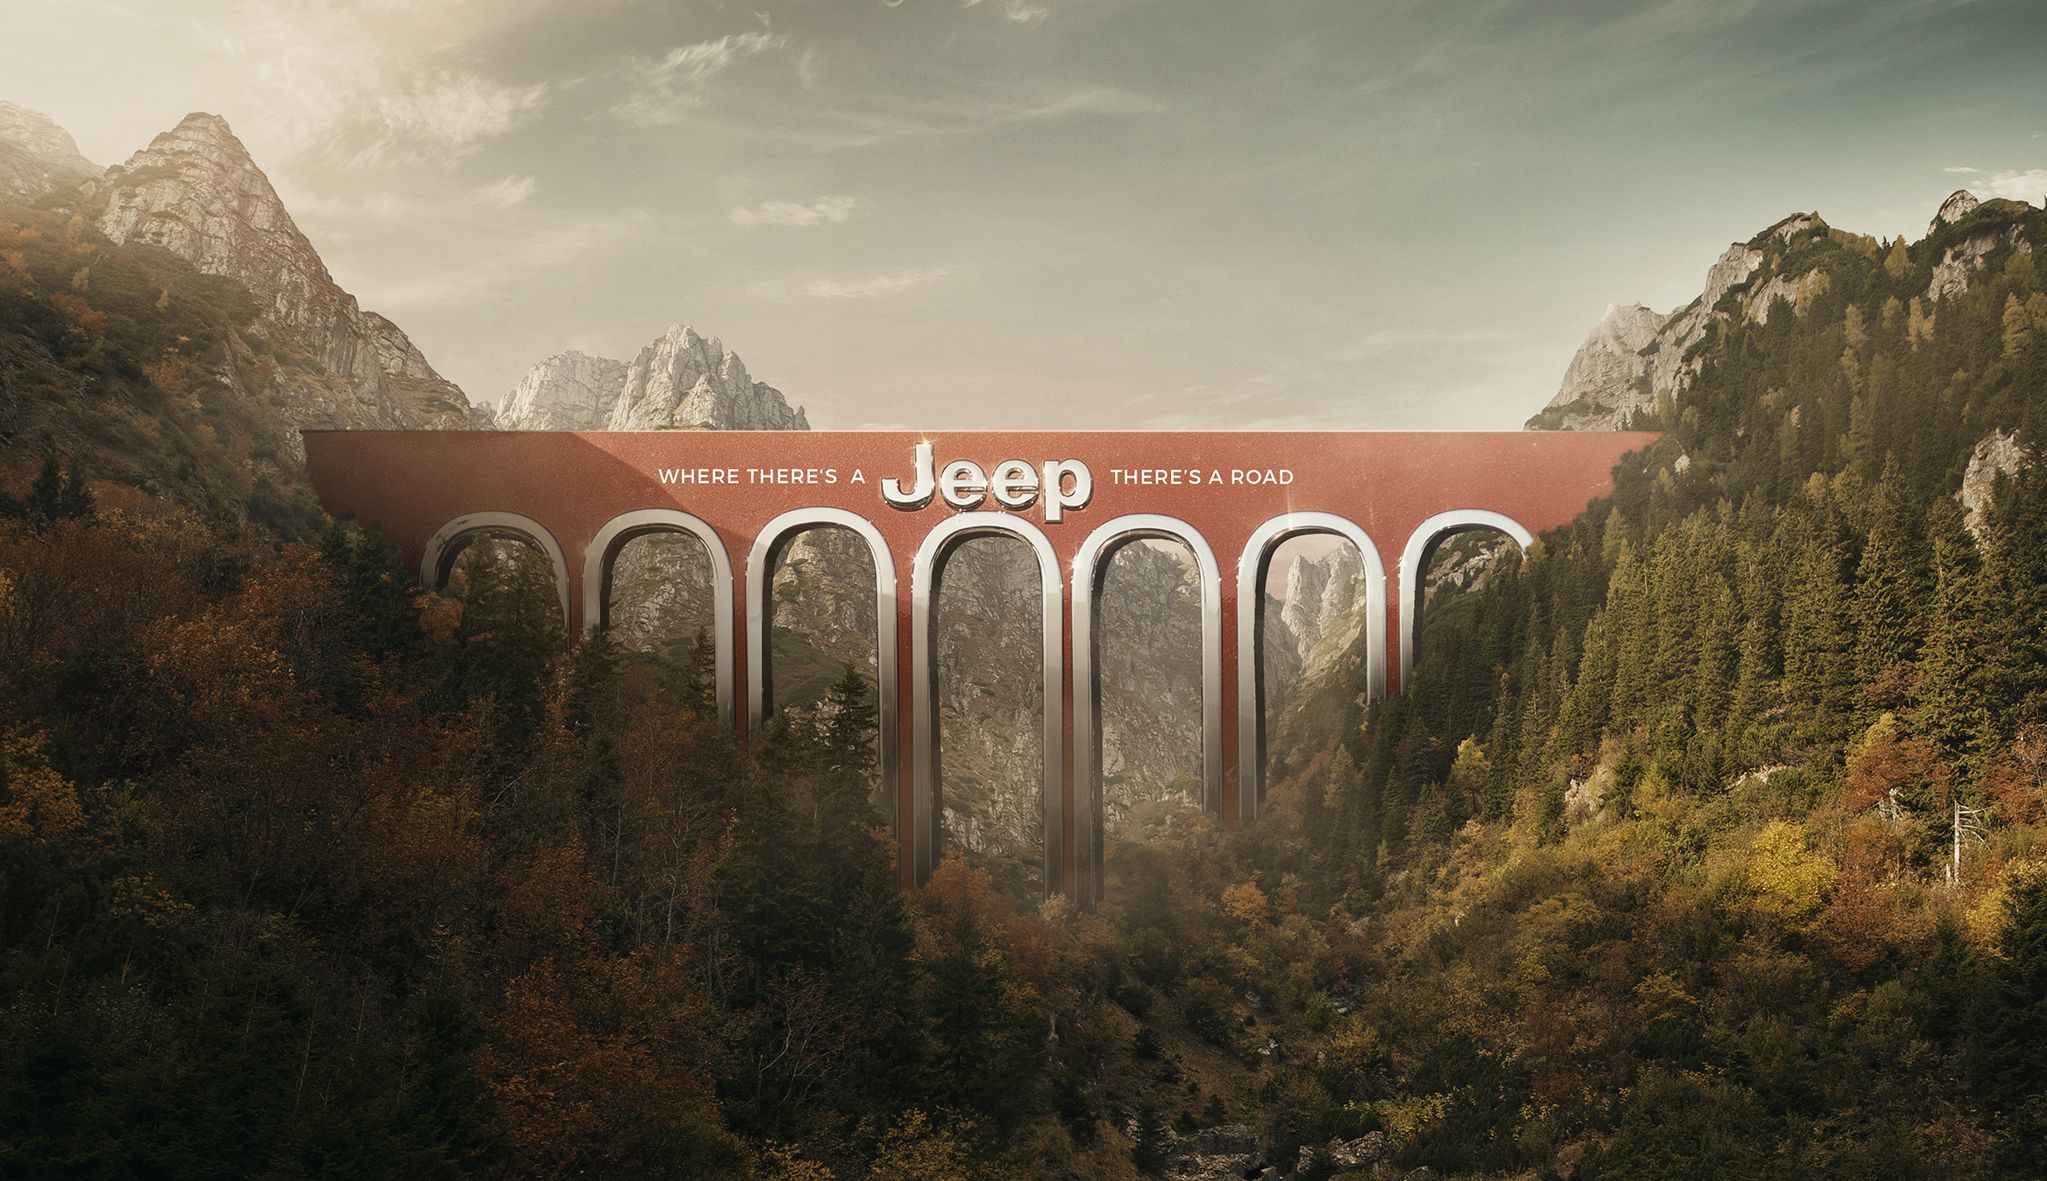 """Jeep: """"Where there's a Jeep, there's a road"""" (JeffersonAndSon)"""